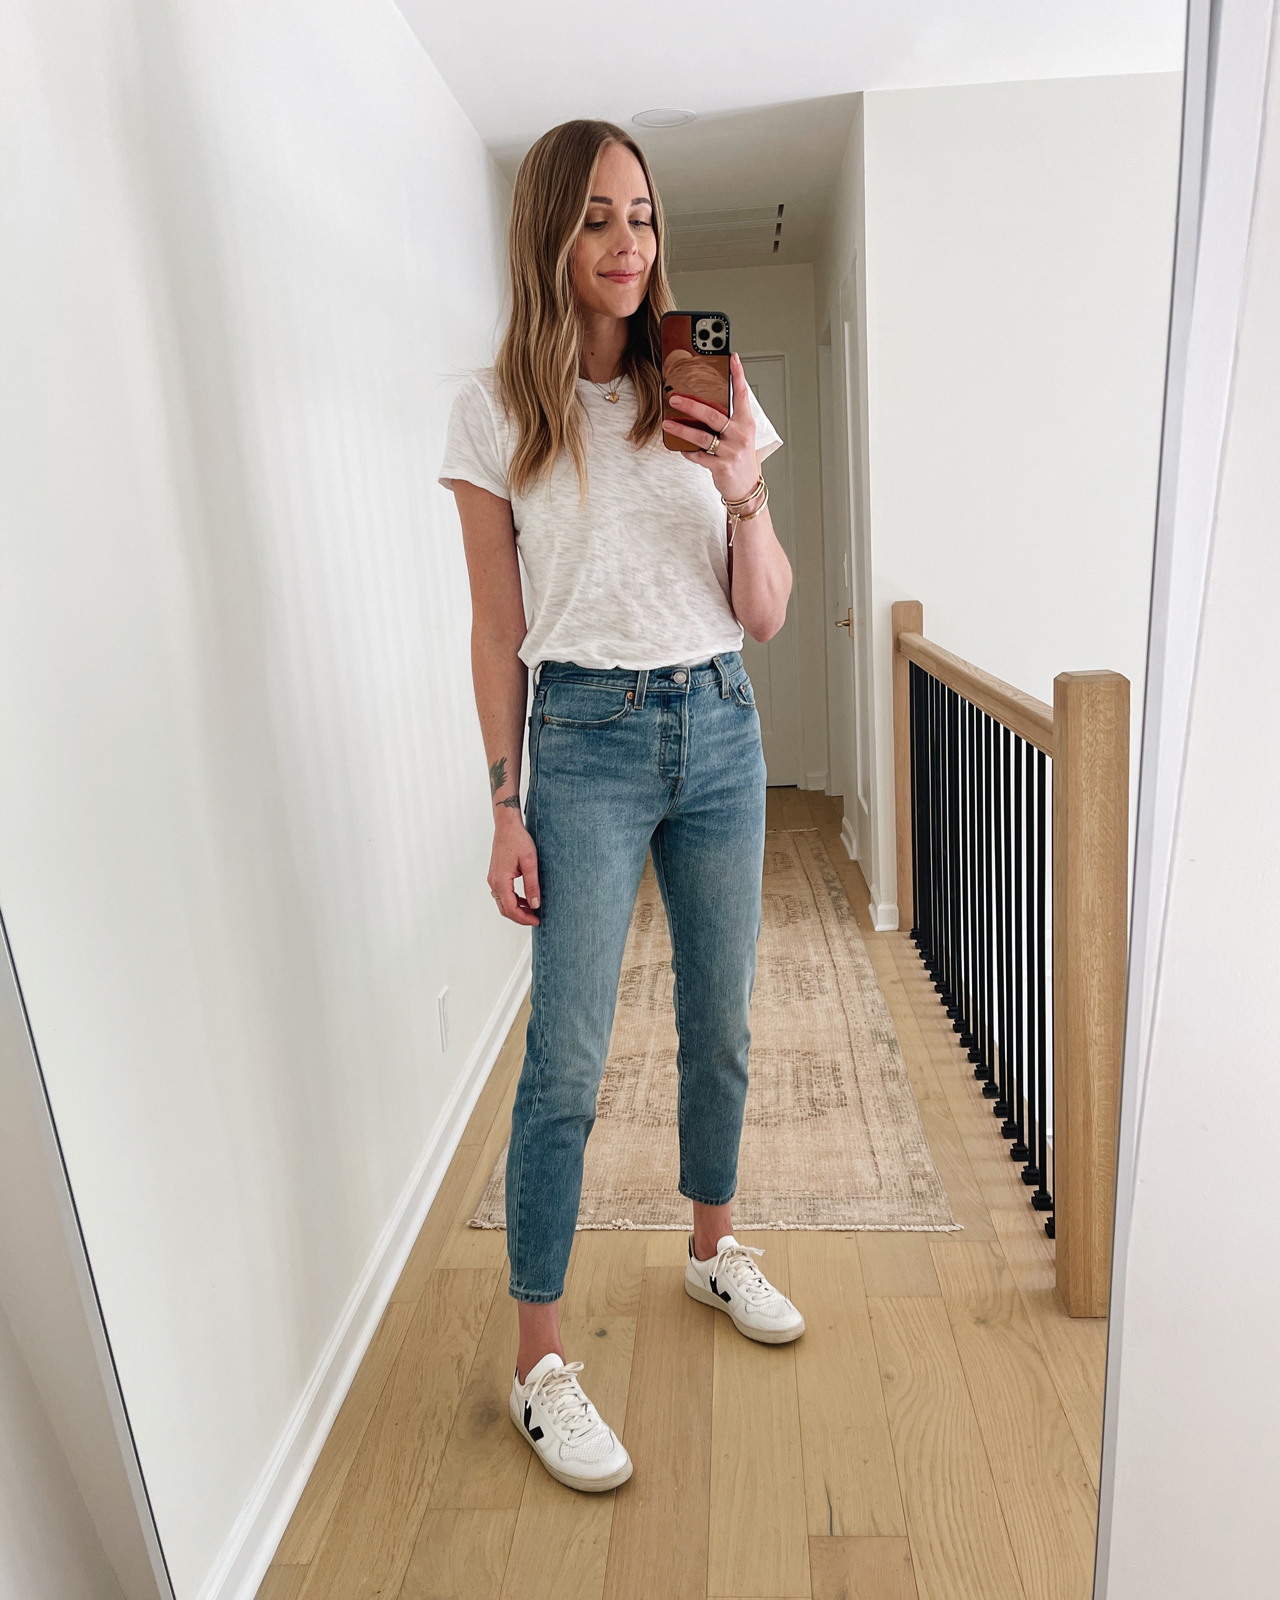 Fashion Jackson Wearing Levis Wedgie Icon Fit Jeans Review These Dreams White Tshirt Veja V10 Sneakers